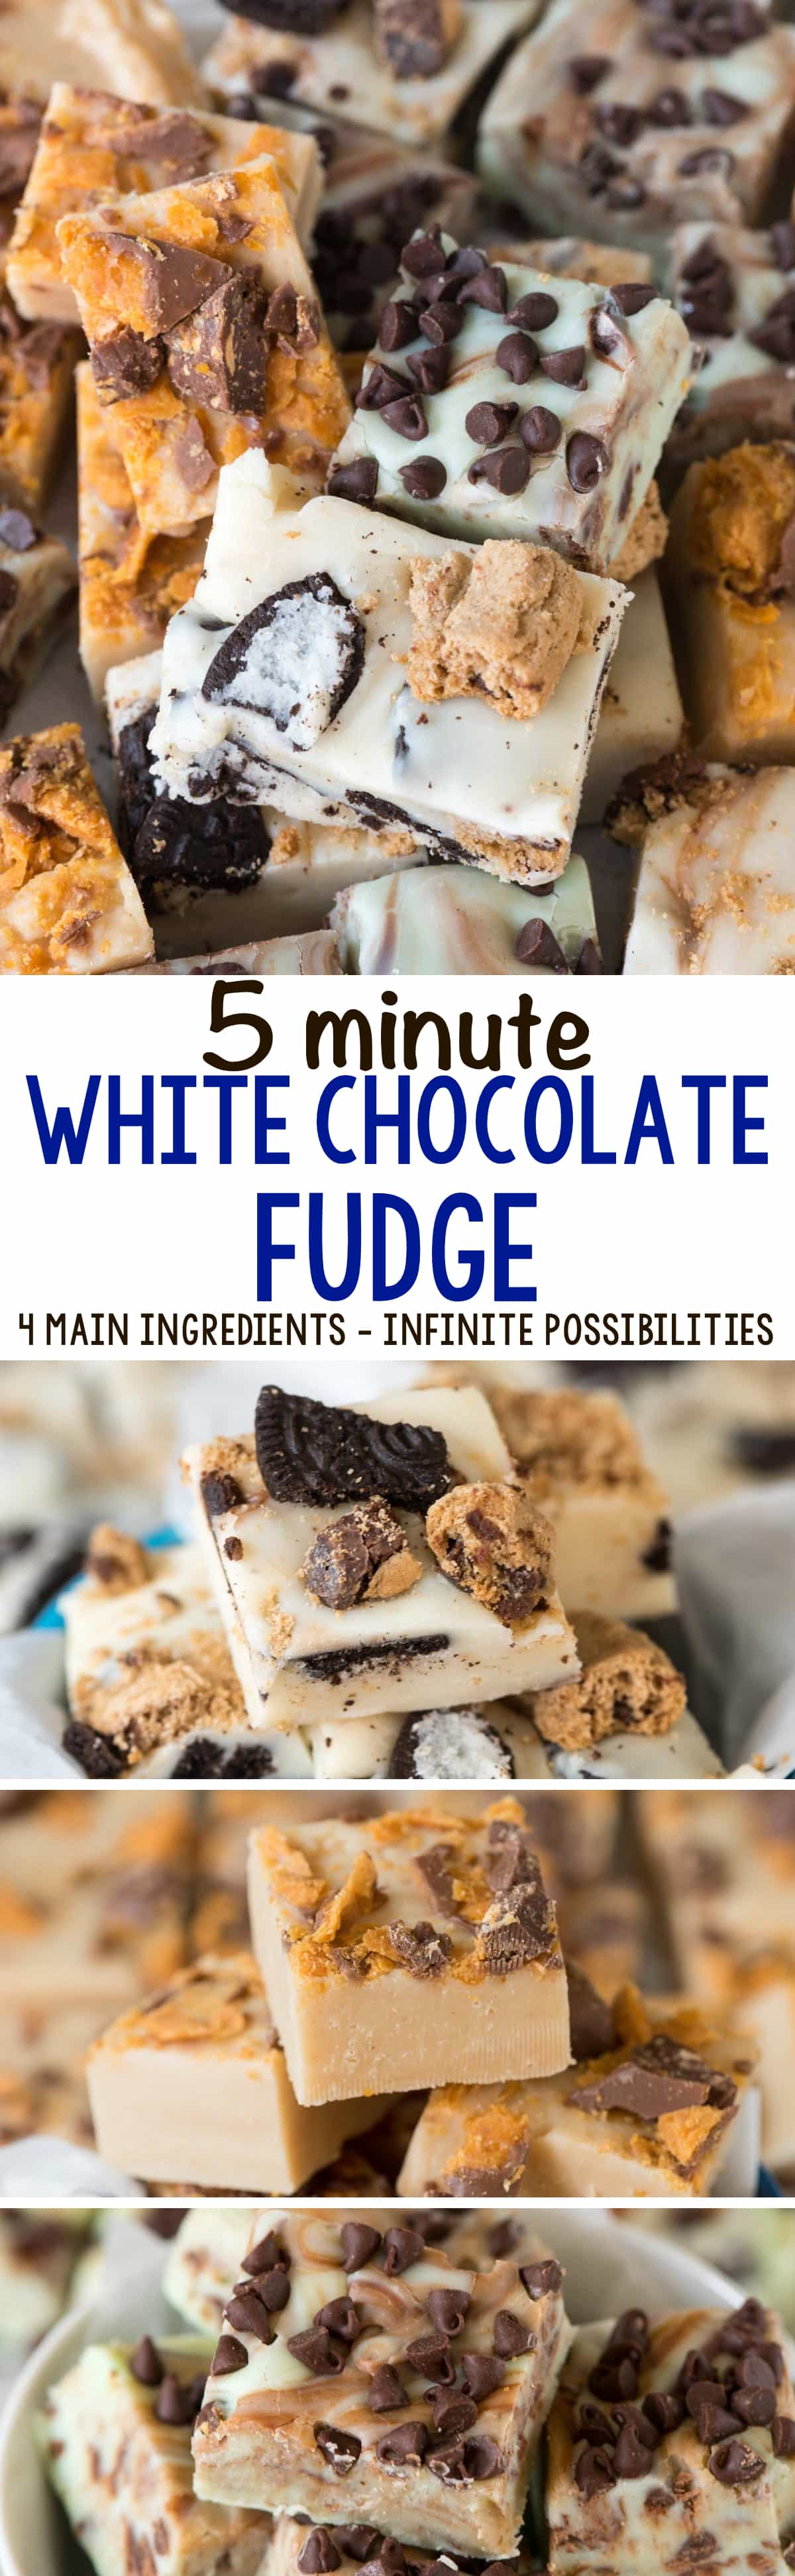 5 Minute White Chocolate Fudge (3+ ways) - Crazy for Crust